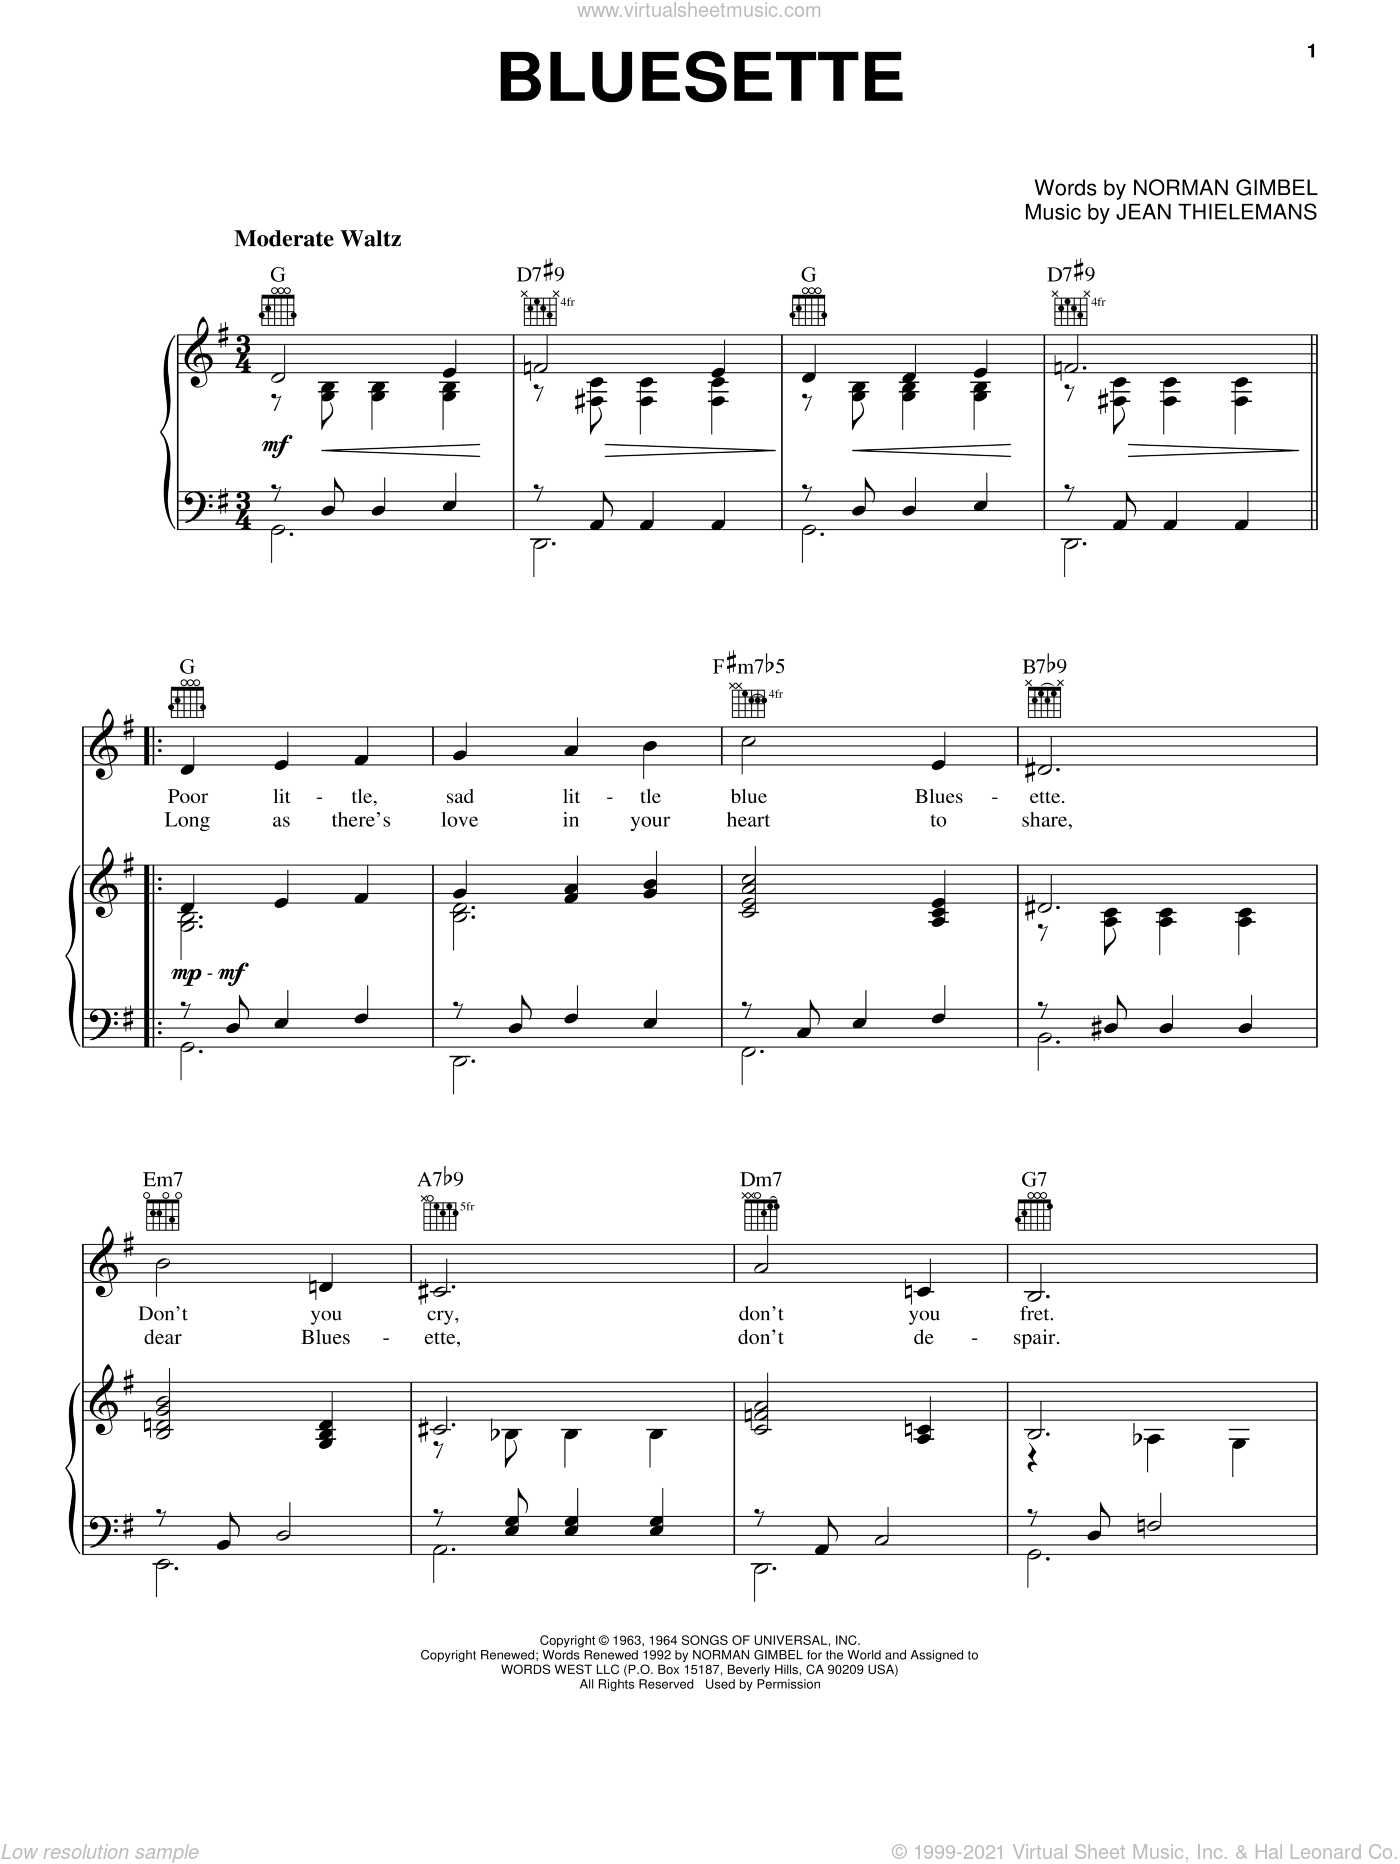 Bluesette sheet music for voice, piano or guitar by Toots Thielmans, Sarah Vaughn, Jean Thielemans and Norman Gimbel, intermediate skill level